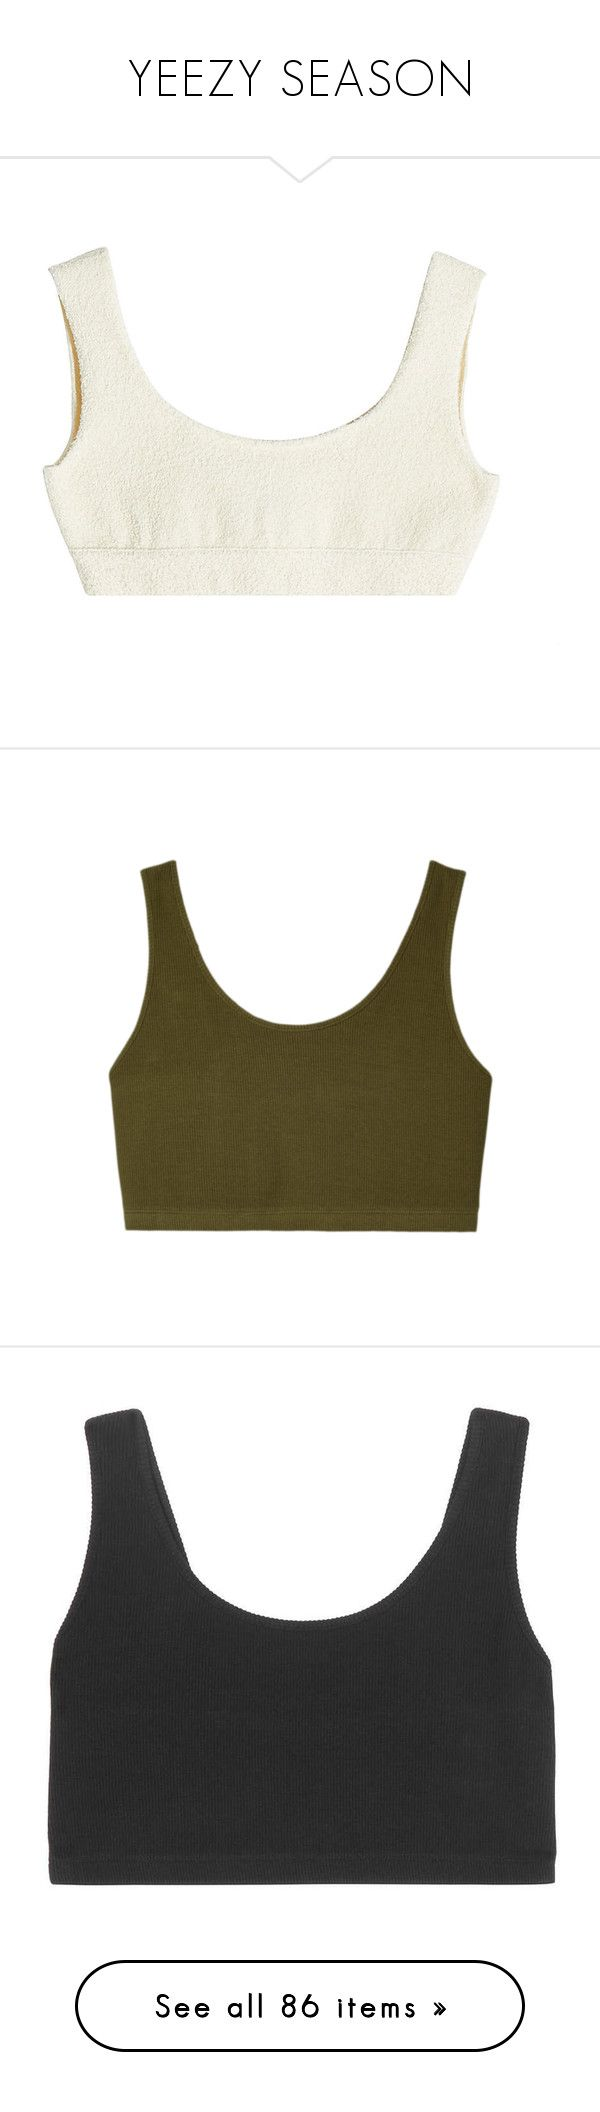 """""""YEEZY SEASON"""" by freakystyley ❤ liked on Polyvore featuring crop top, tops, beige, shirts, activewear, sports bras, cotton sports bra, cotton activewear, adidas originals and green"""